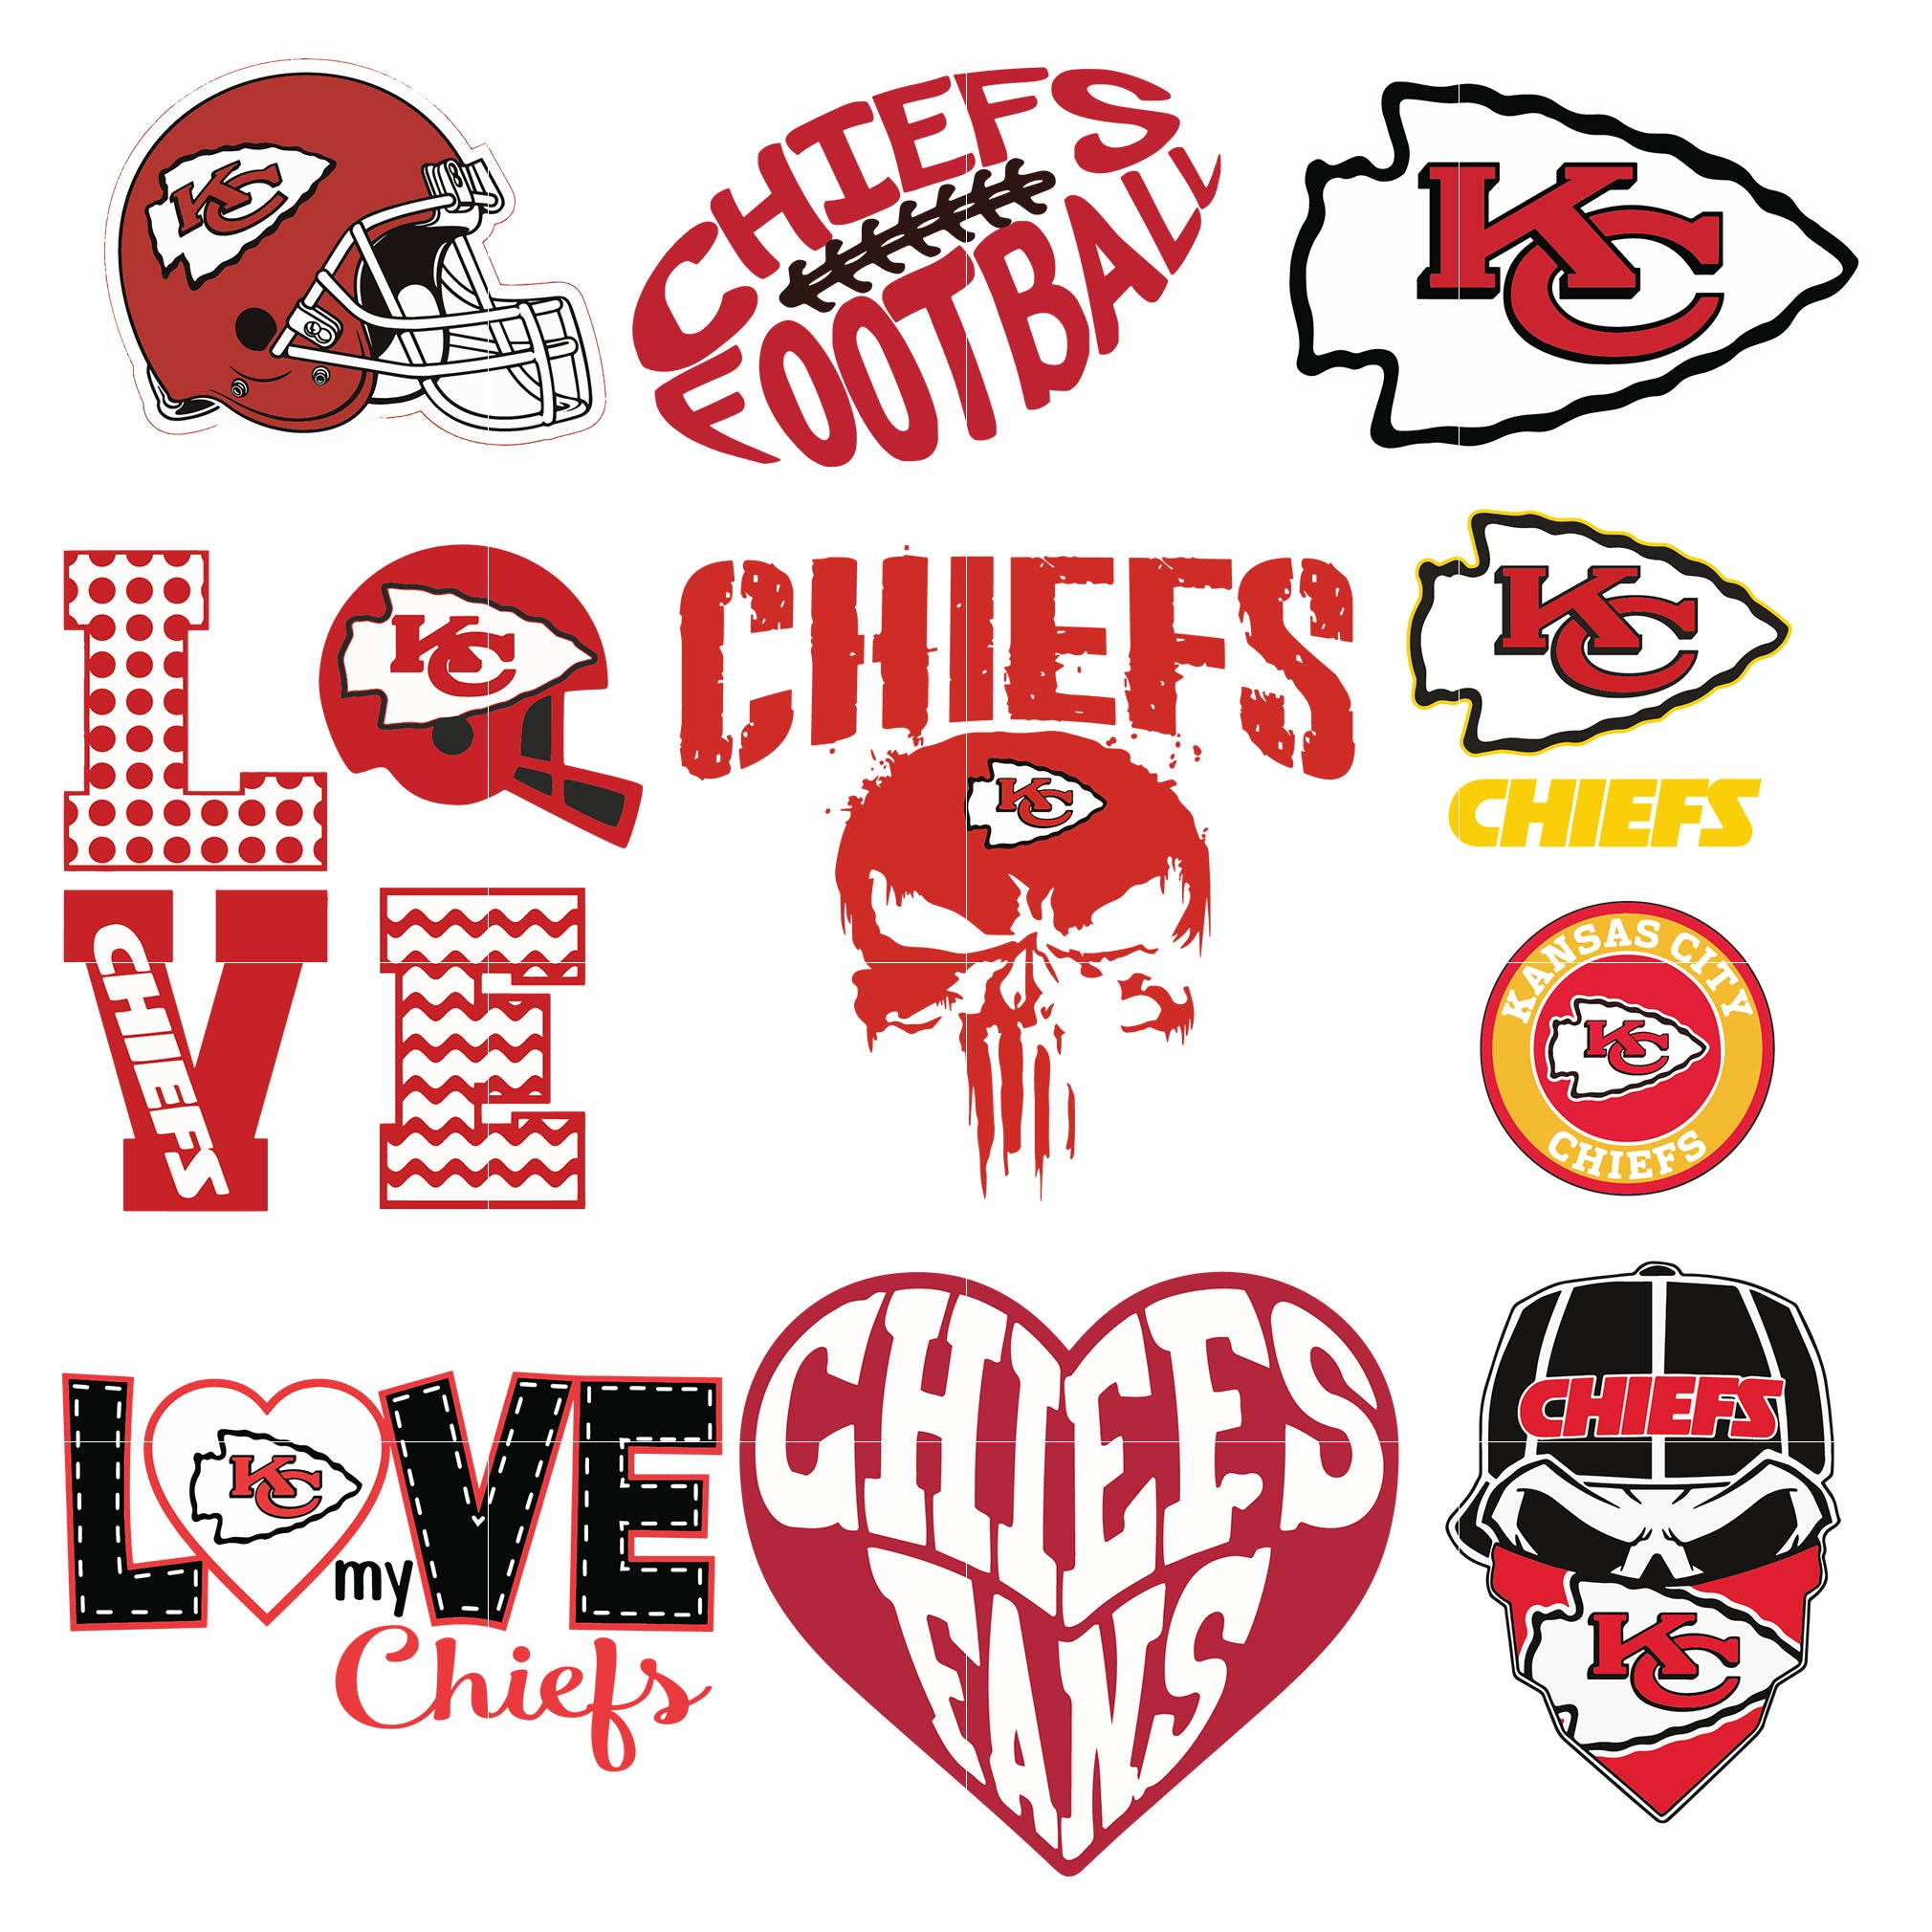 Kansas City Chiefs Svg, NCAA Svg, NFL Svg,, Baseball Svg logo,ncaa svg,png,dxf,ncaa logo svg,png,dxf,football university svg,png